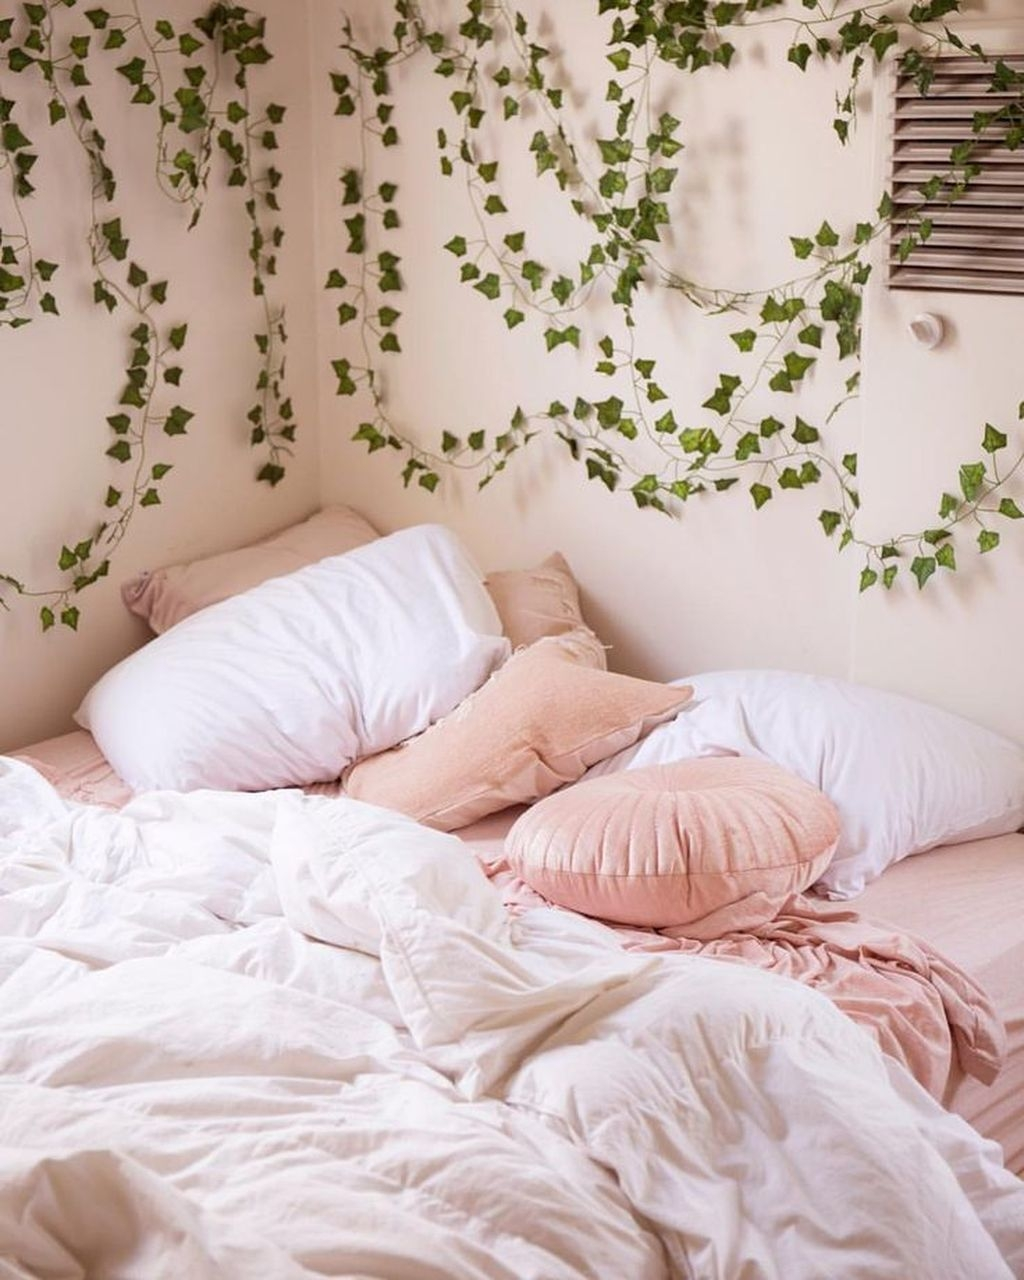 Pink Bedroom Decor You Can Try On Your Own 35